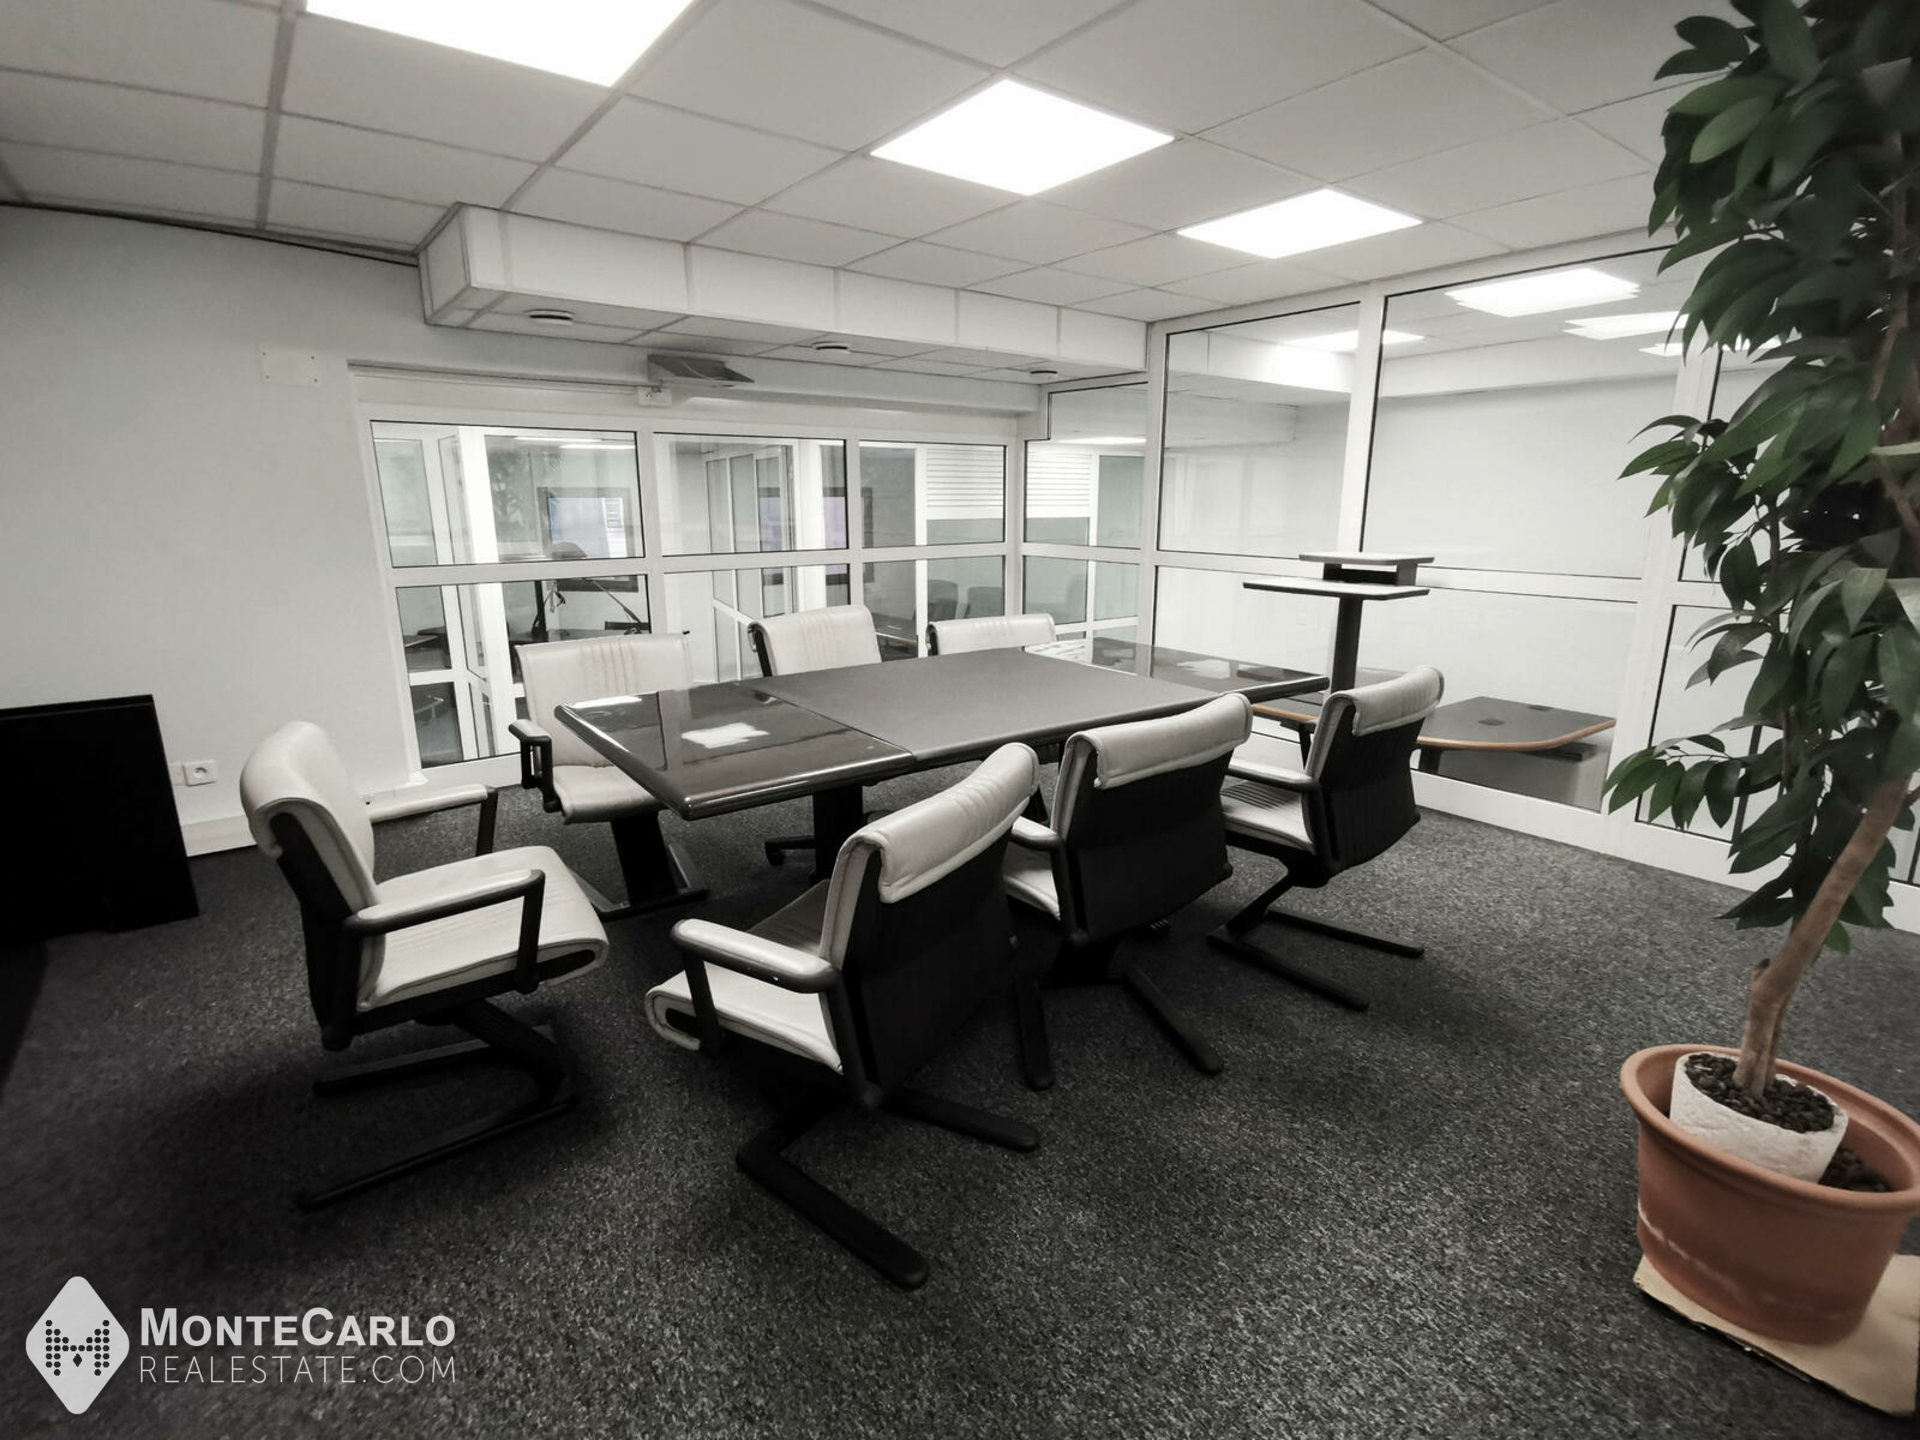 For sale Les Acanthes - Office : 4 950 000 € | Monte-Carlo Real Estate [V1239-L]